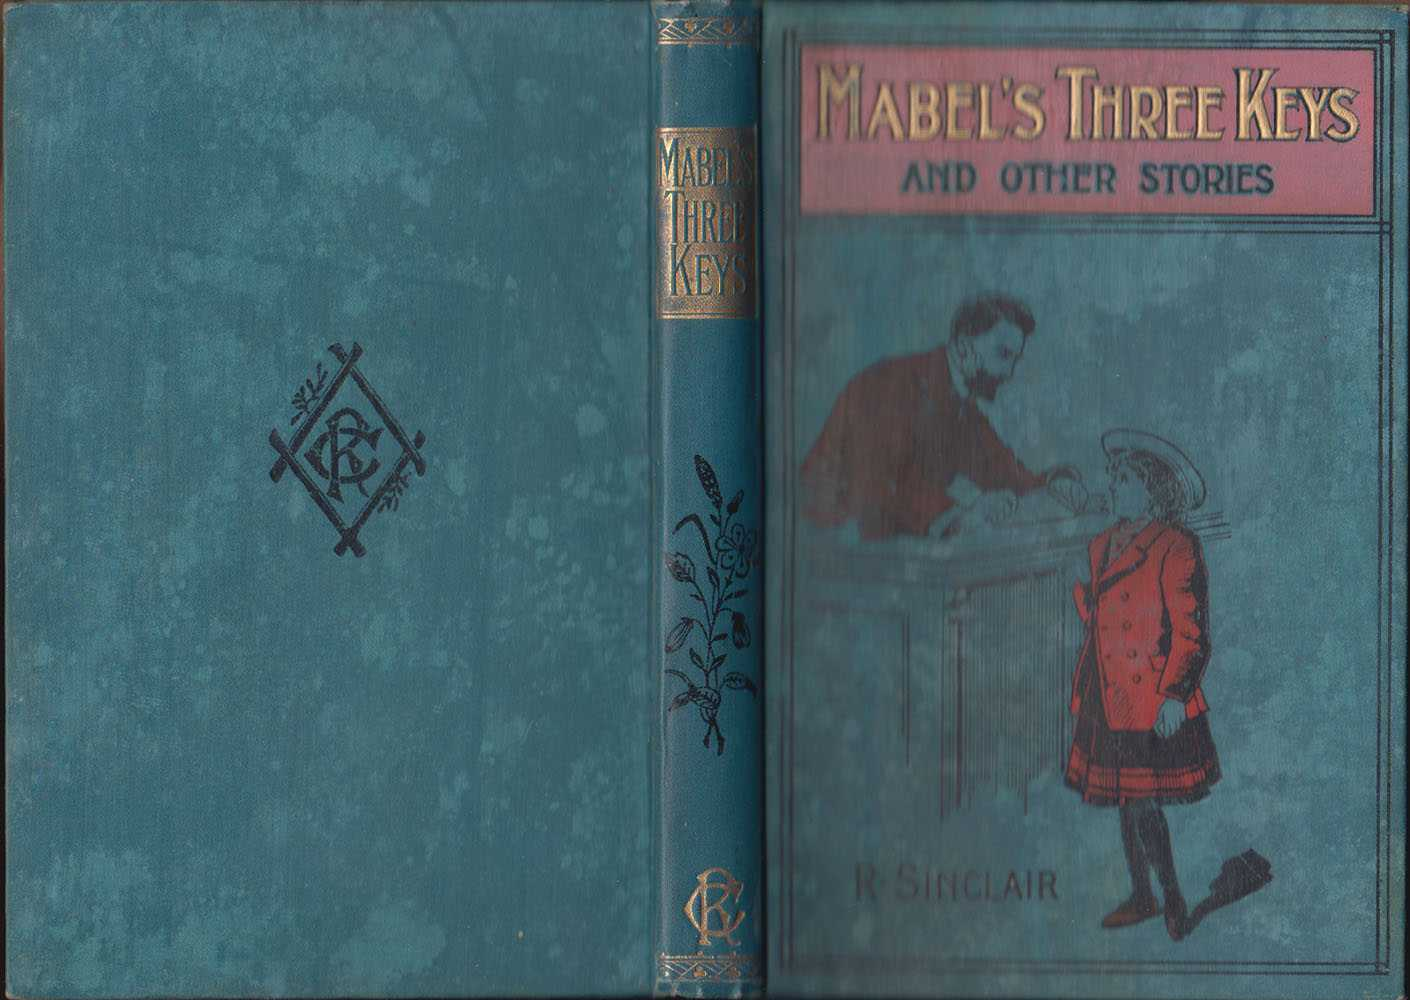 SINCLAIR R - Mabel's Three Keys and Other Stories